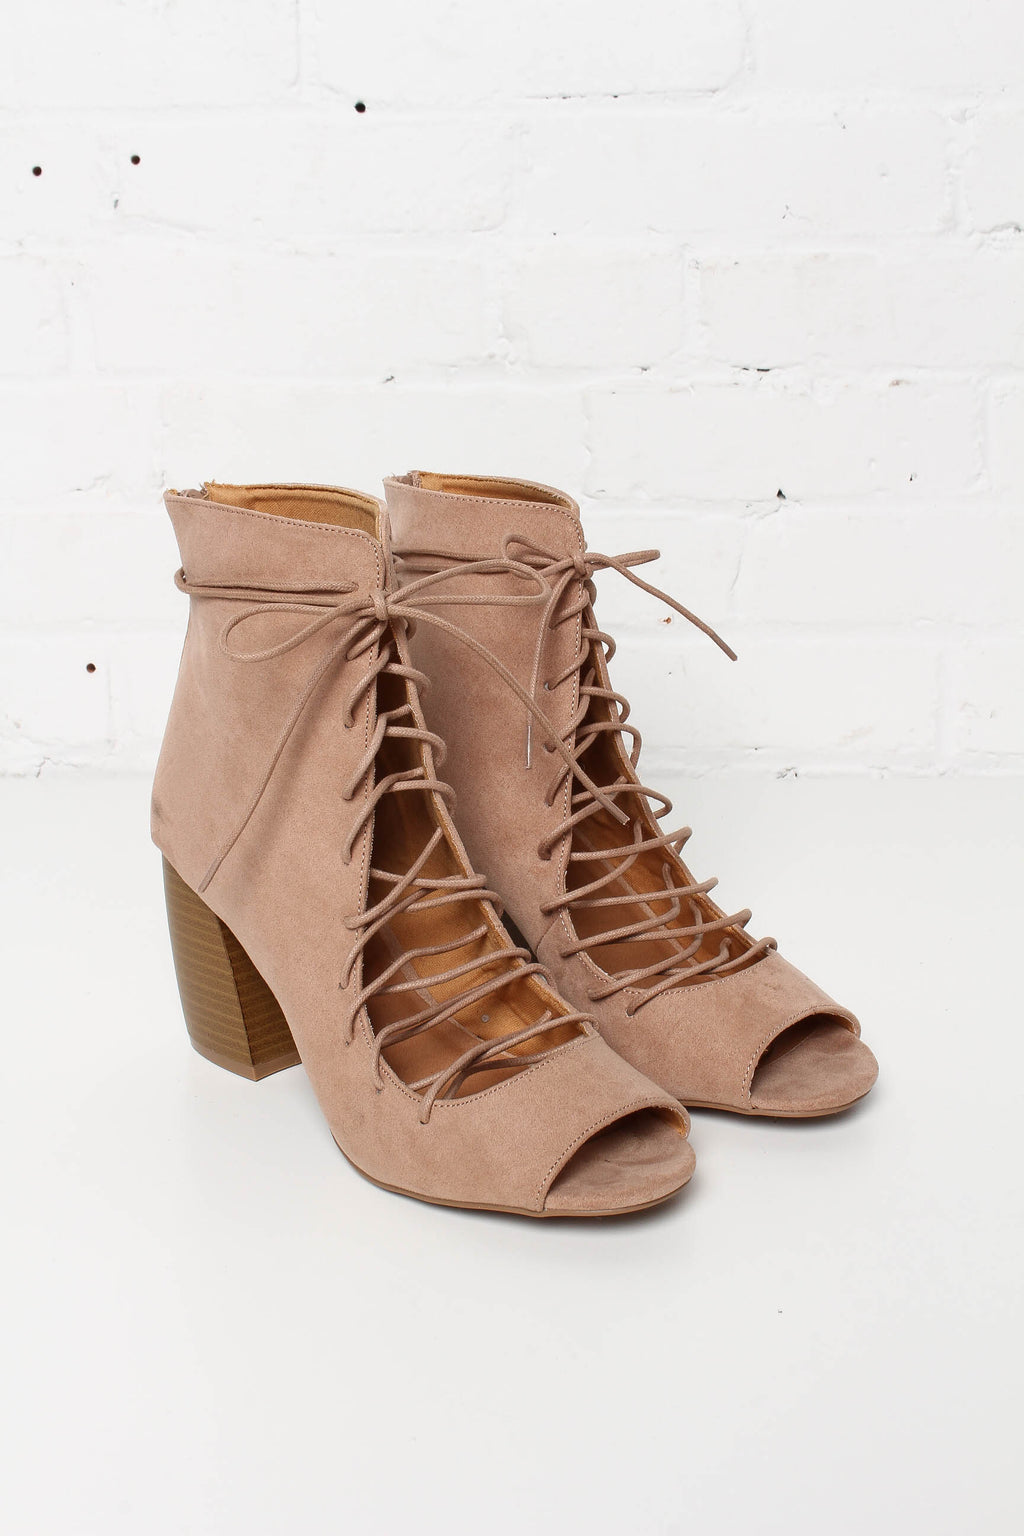 Beau Lace Up Peep Toe Bootie - Tan